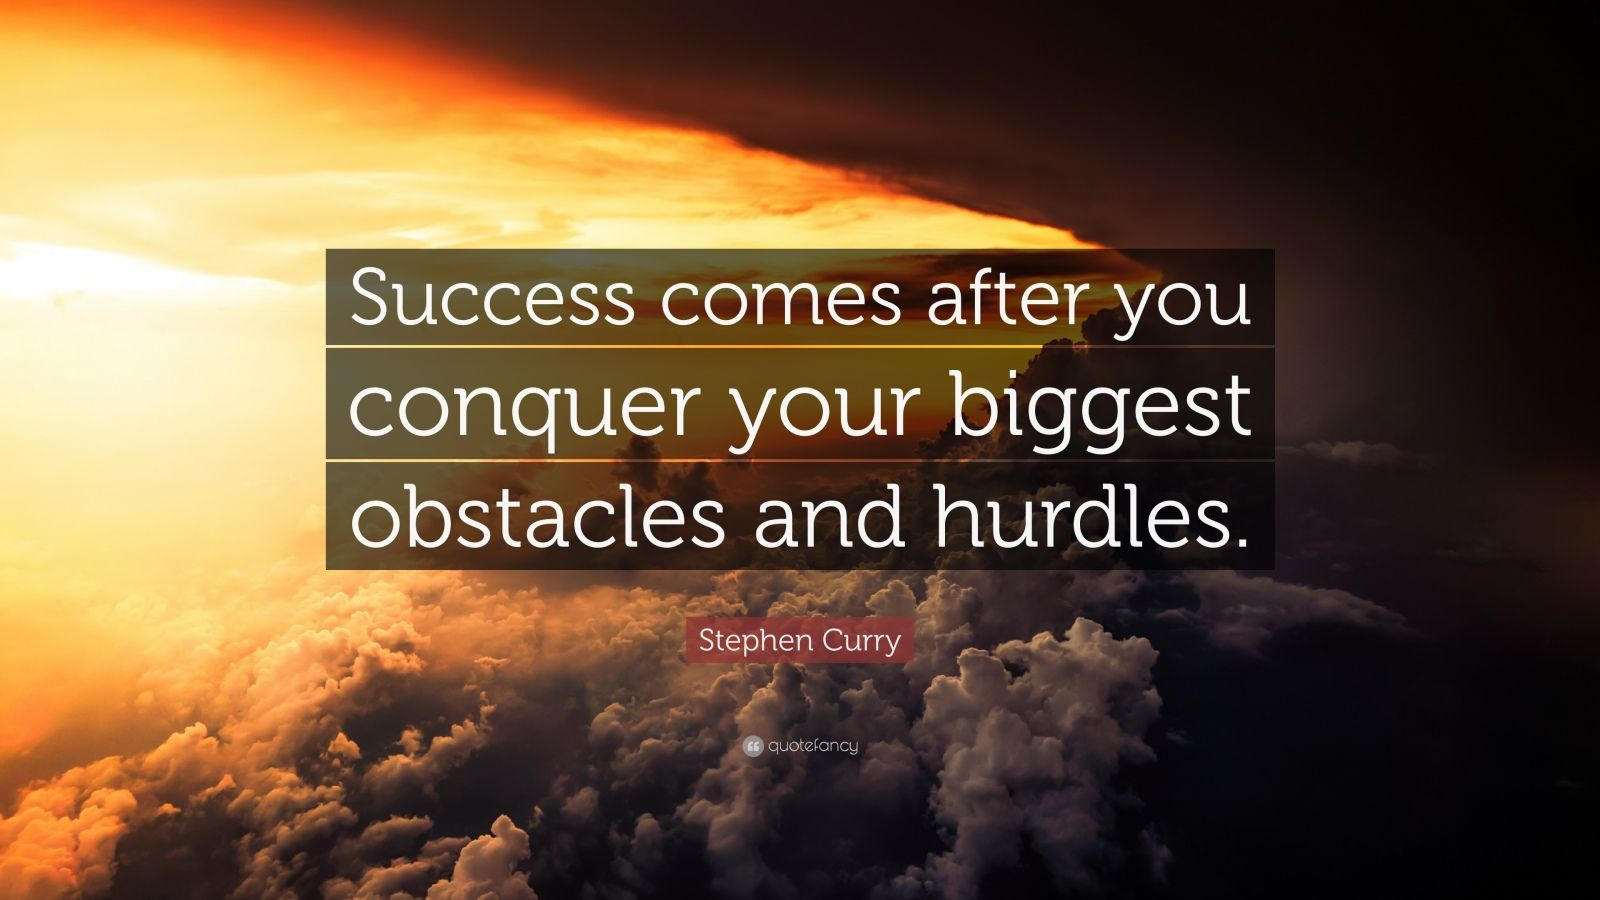 Business Success Quotes Wallpaper Stephen Curry Quote Success Comes After You Conquer Your